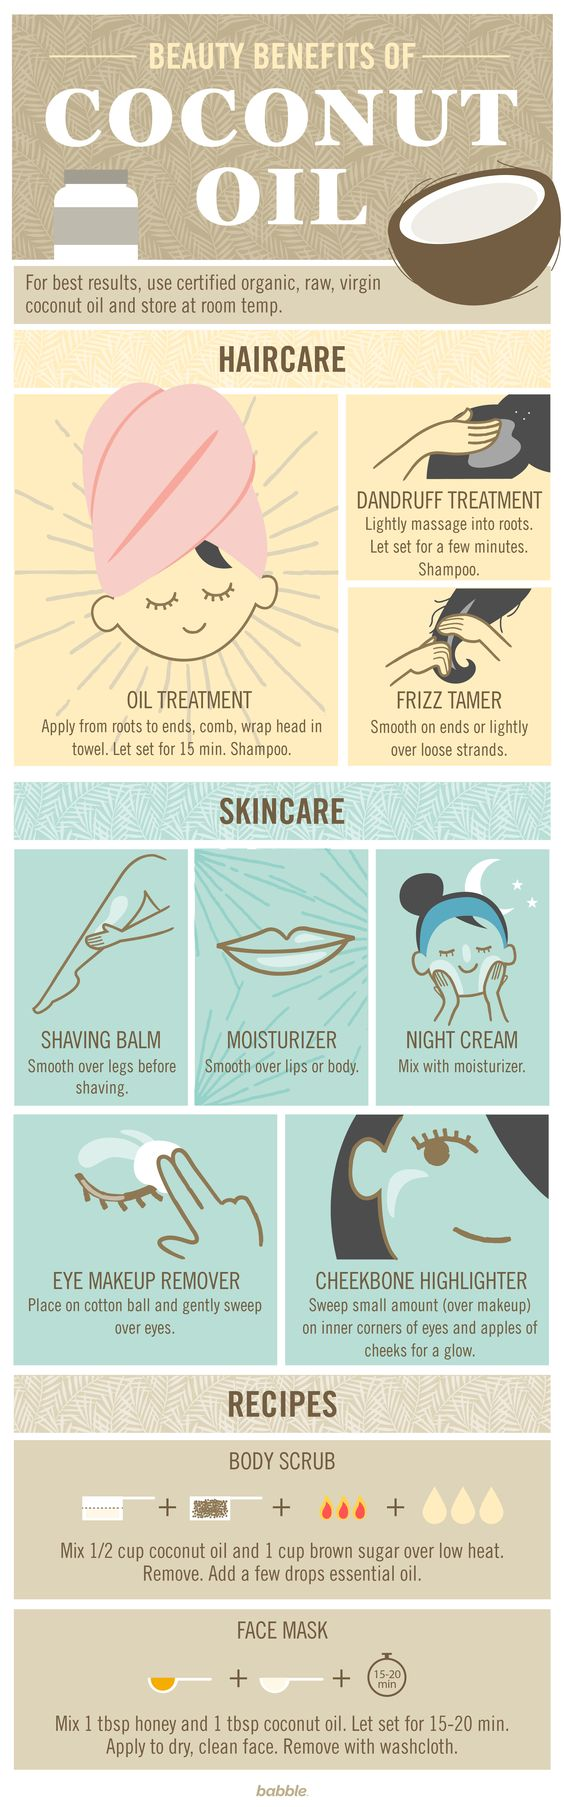 Coconut oil is everywhere right now. You don't know whether to eat it, drink it, or bathe in it. Try these great beauty uses for coconut oil tonight, from skincare to haircare to DIY beauty products.: